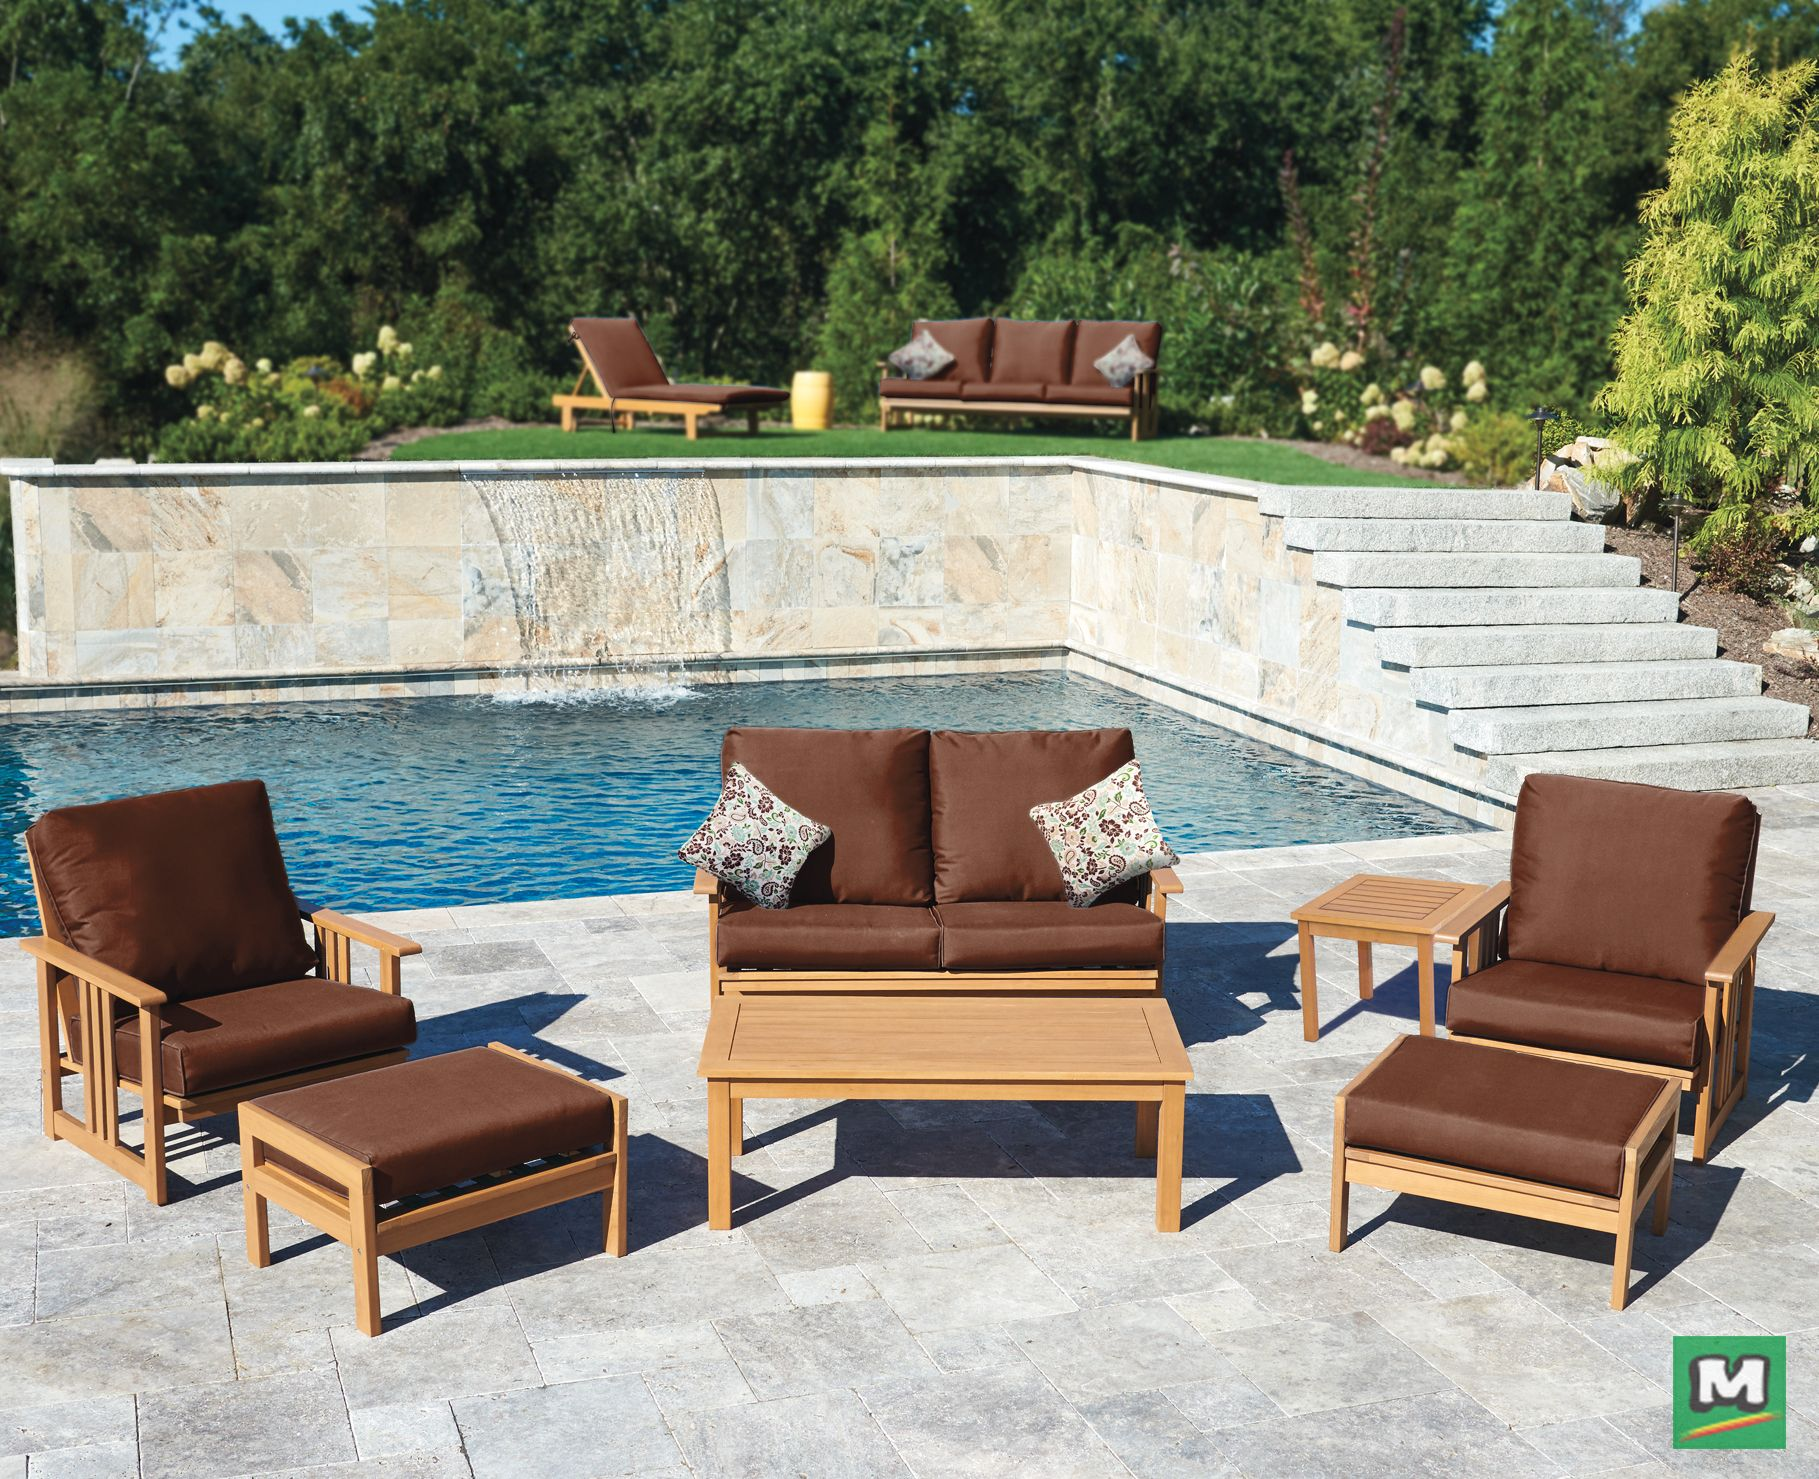 Beautifully designed, the Bayfield 7Piece Deep Seating